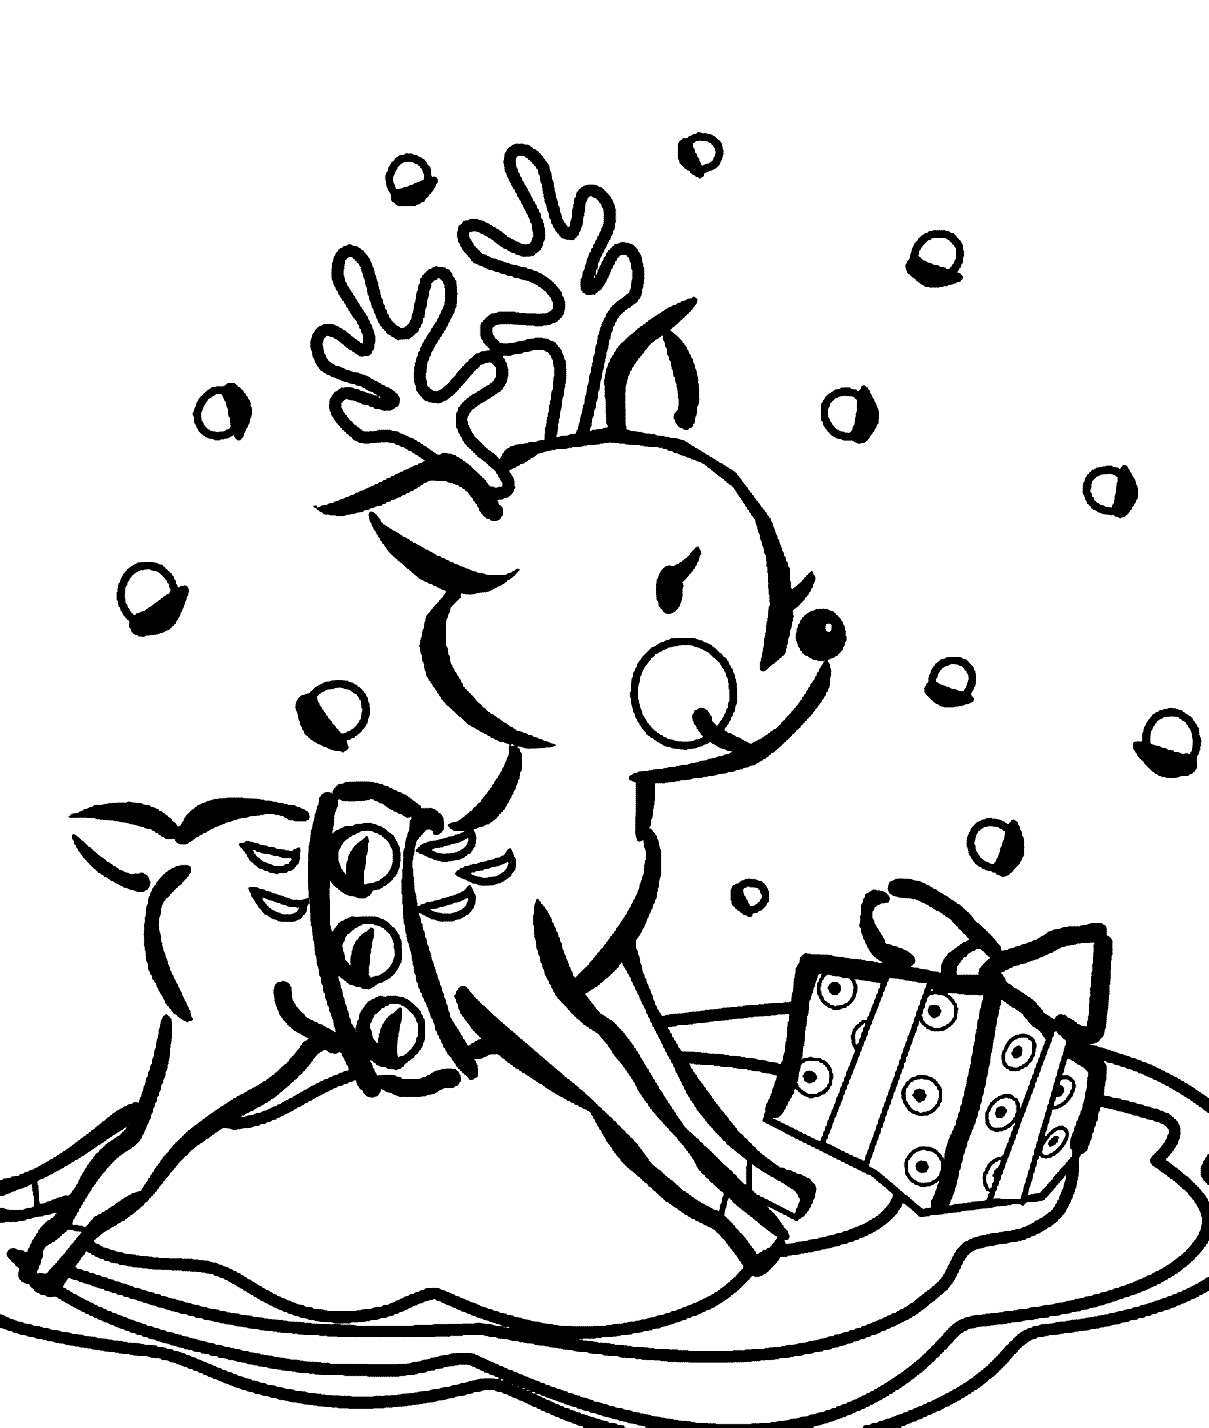 Coloring Pages For Christmas Reindeer At Getcolorings